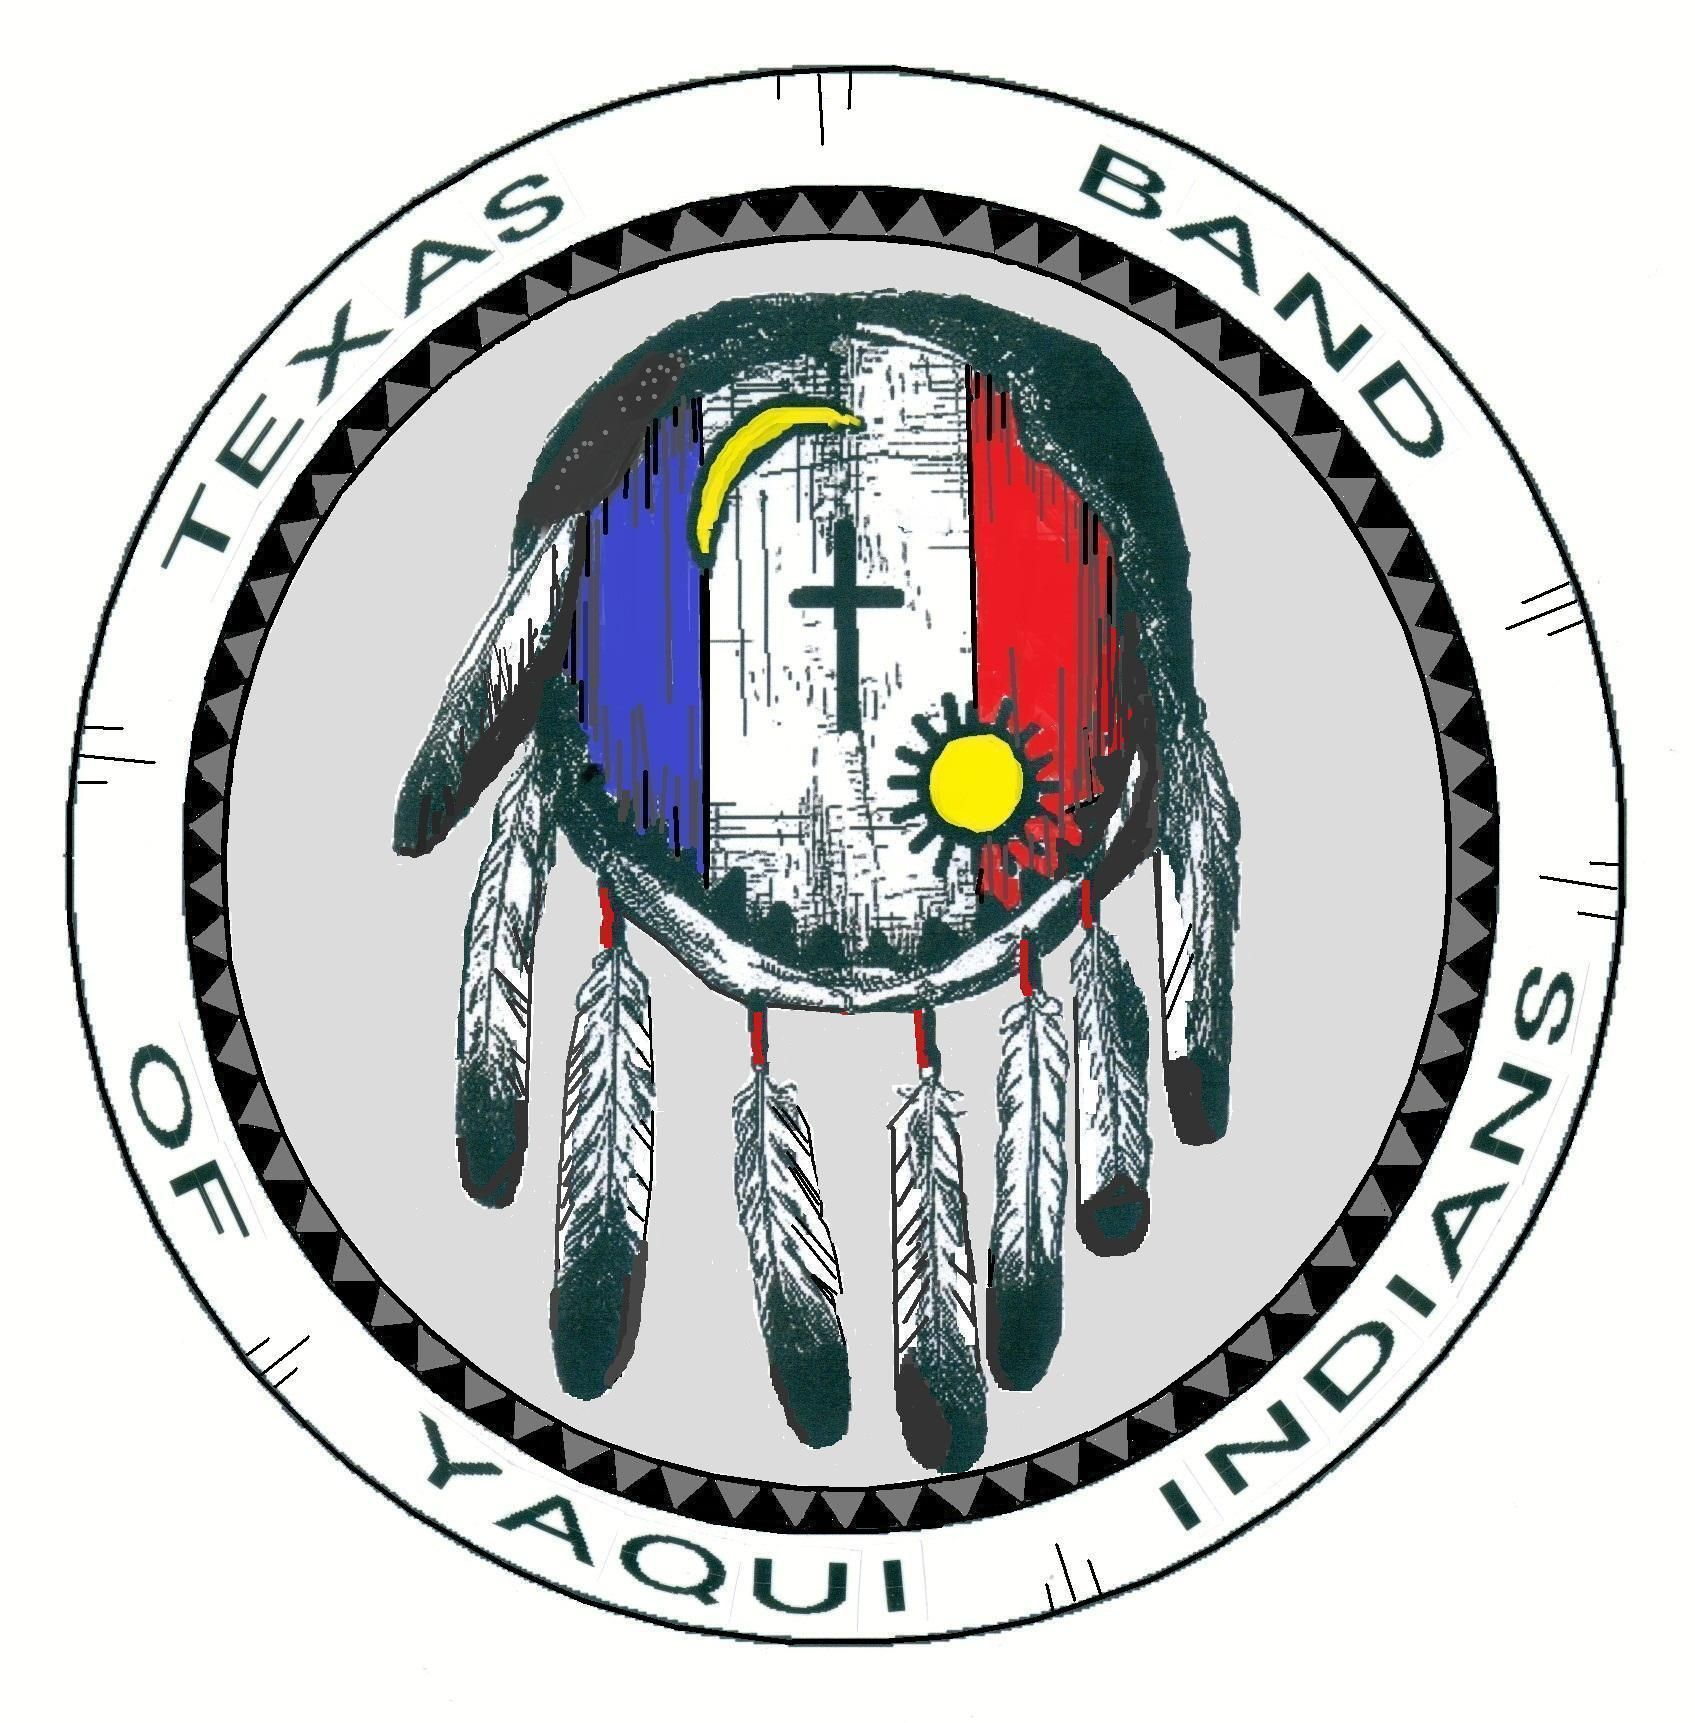 Texas Band Yaqui Indian Tribal Seal My Heritagethis 1 Is For You